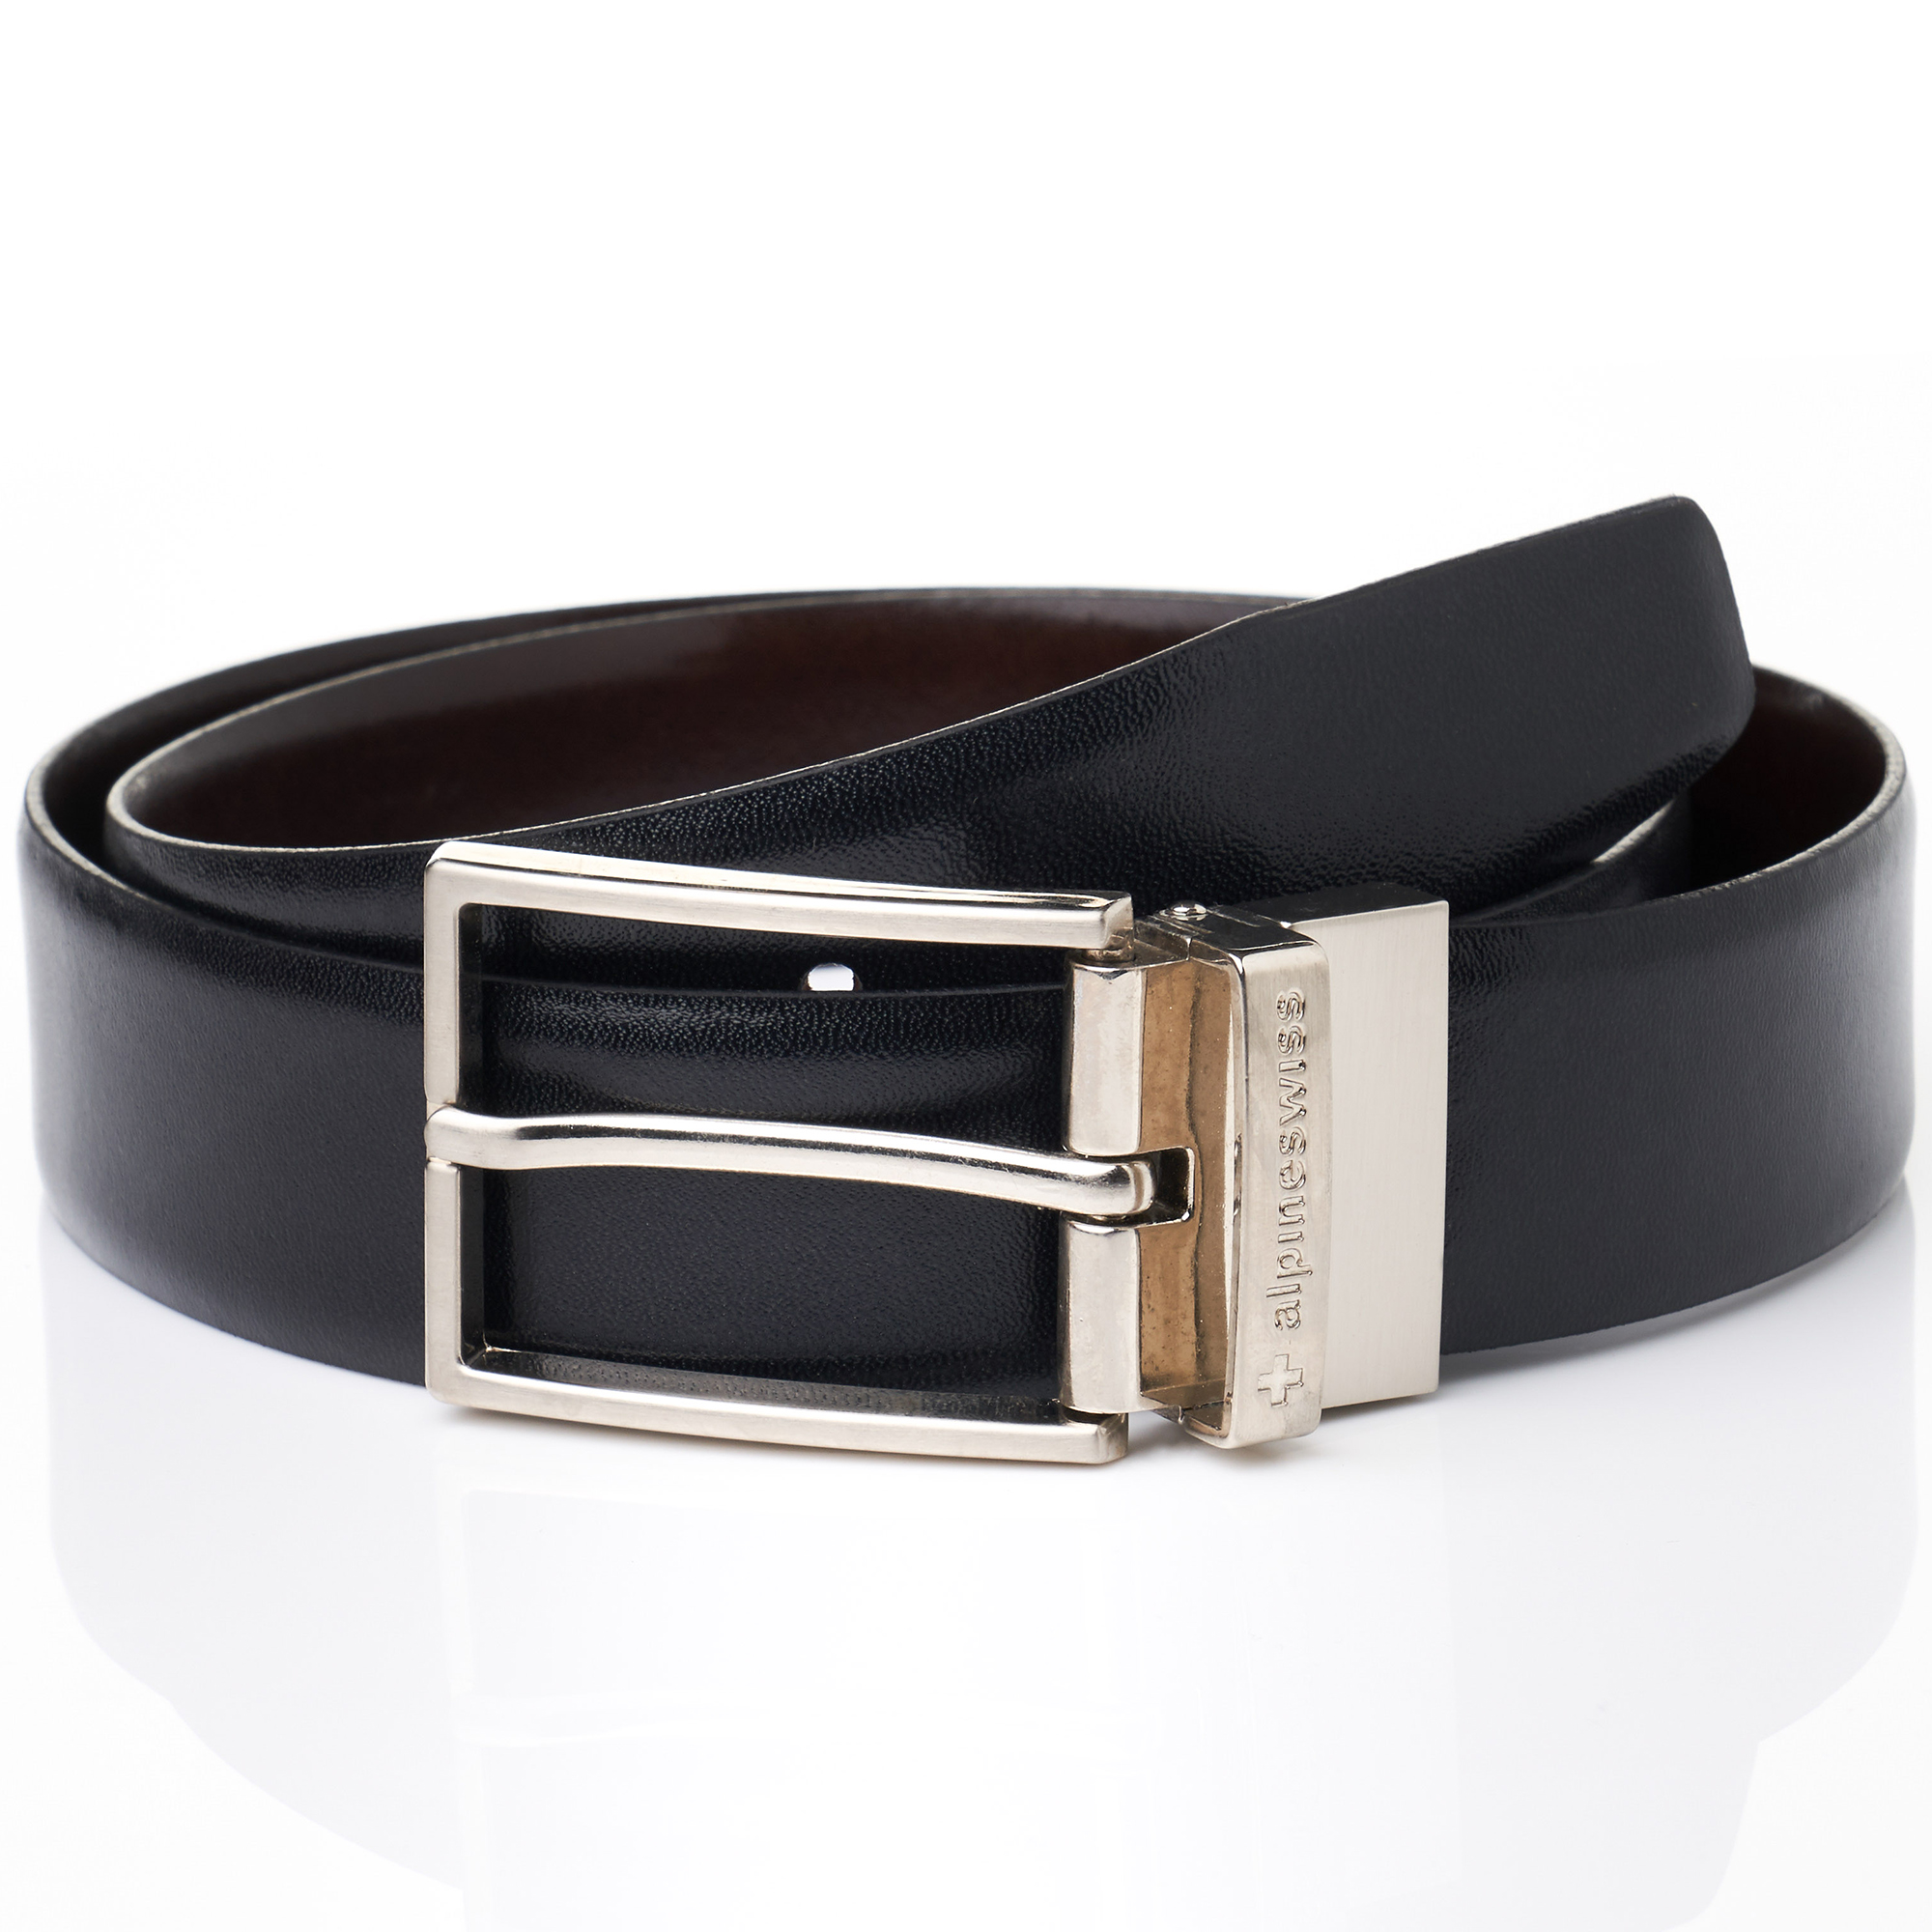 Alpine-Swiss-Mens-Dress-Belt-Reversible-Black-Brown-Leather-Imported-from-Spain thumbnail 15